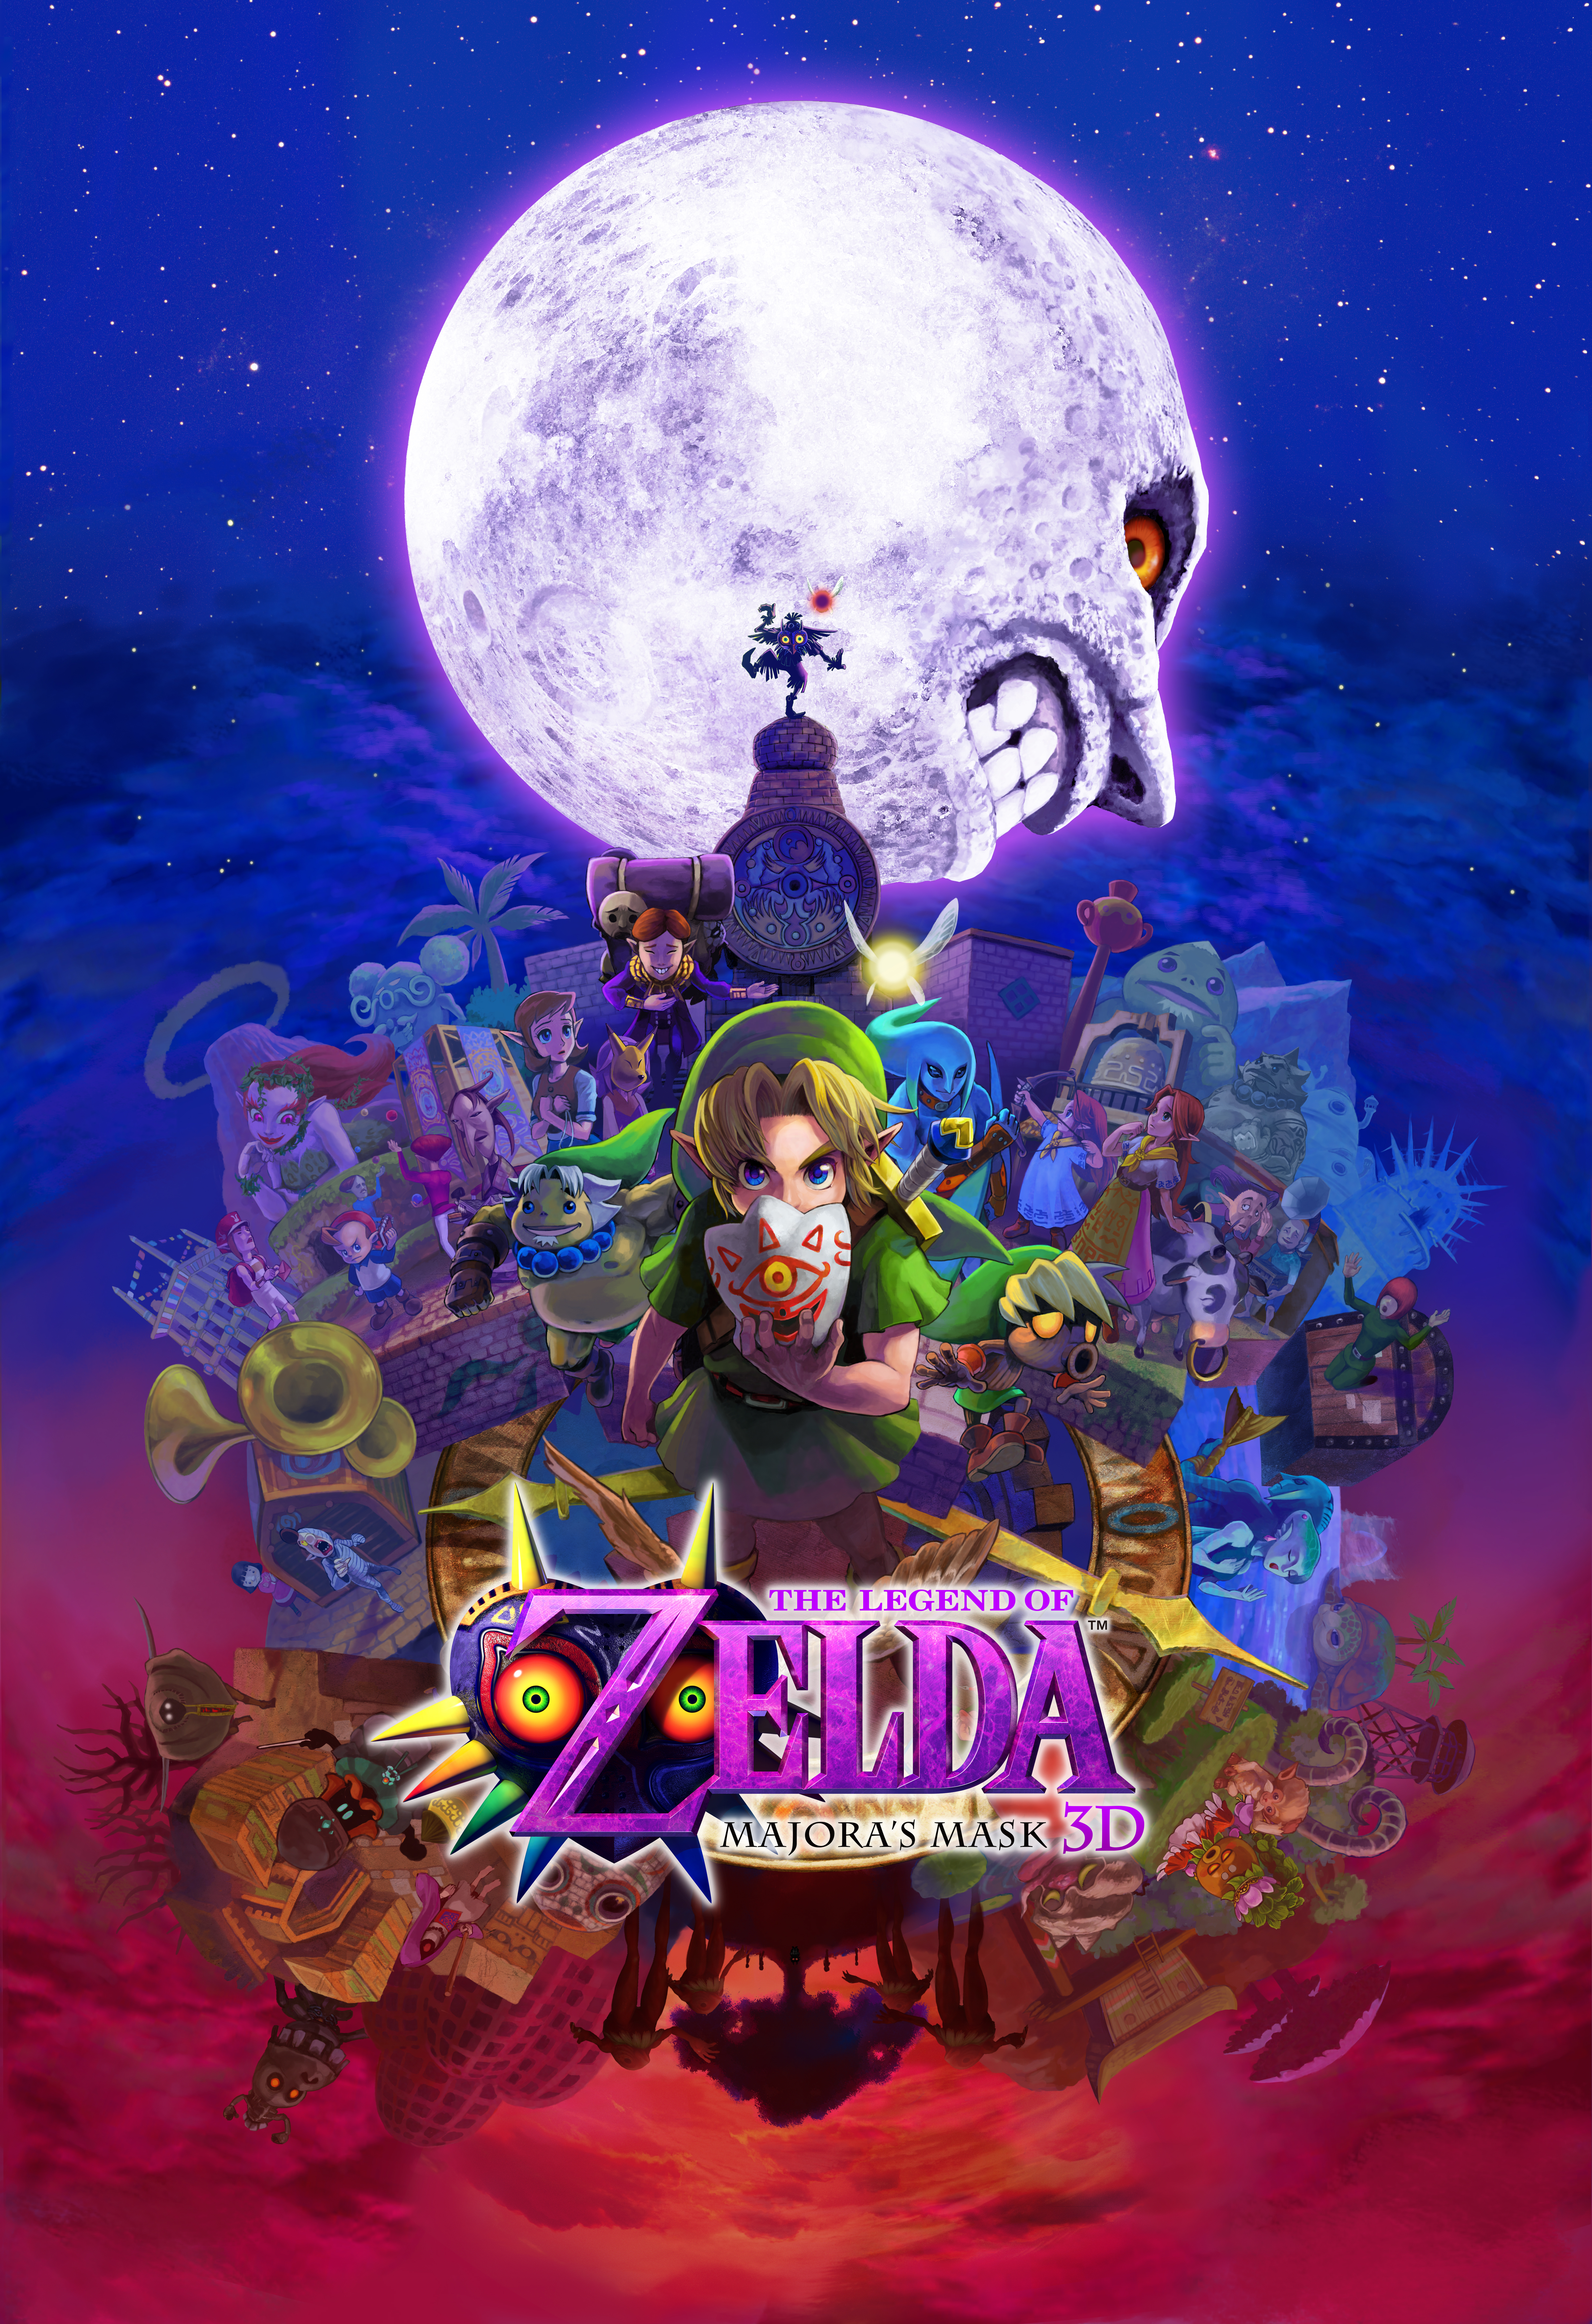 This Majora's Mask 3D poster is as stunning as it is enormous